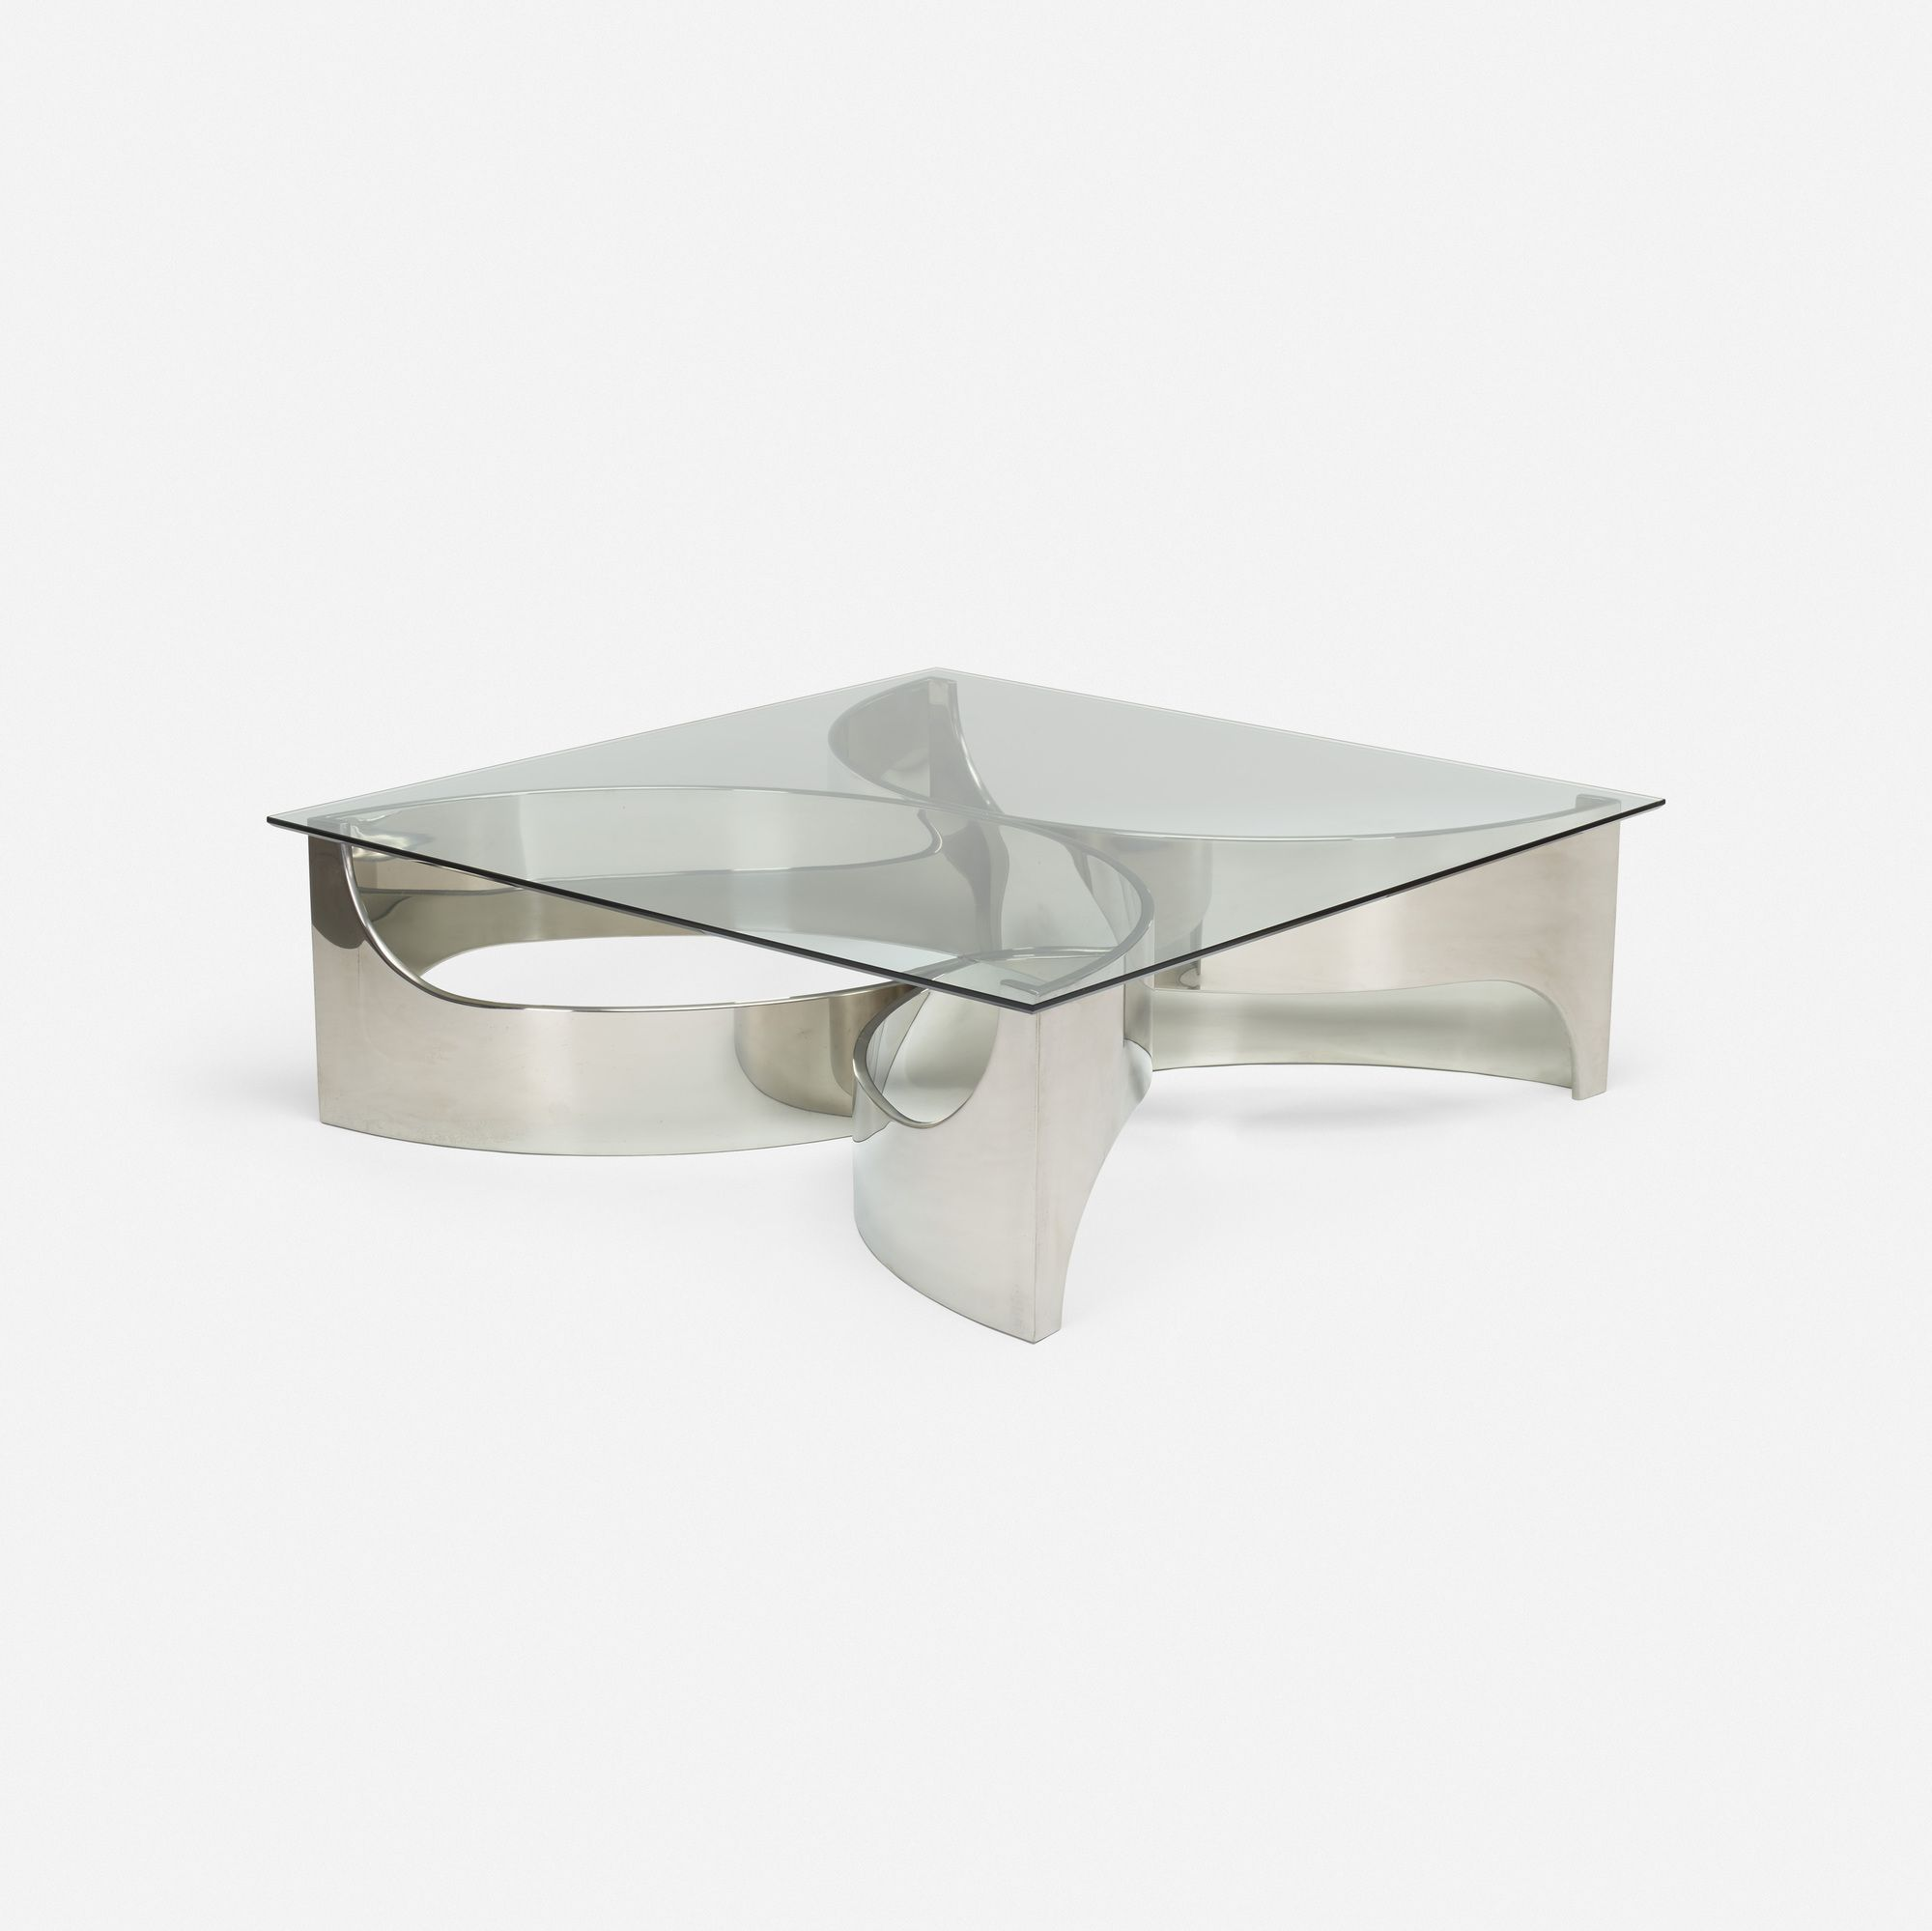 Lot 337 Maxform Coffee Table C 1970 Glass Stainless Steel 48 W X 48 D X 15 H In Estimate 3 000 5 000 Coffee Table Table Coffee [ 1999 x 2000 Pixel ]